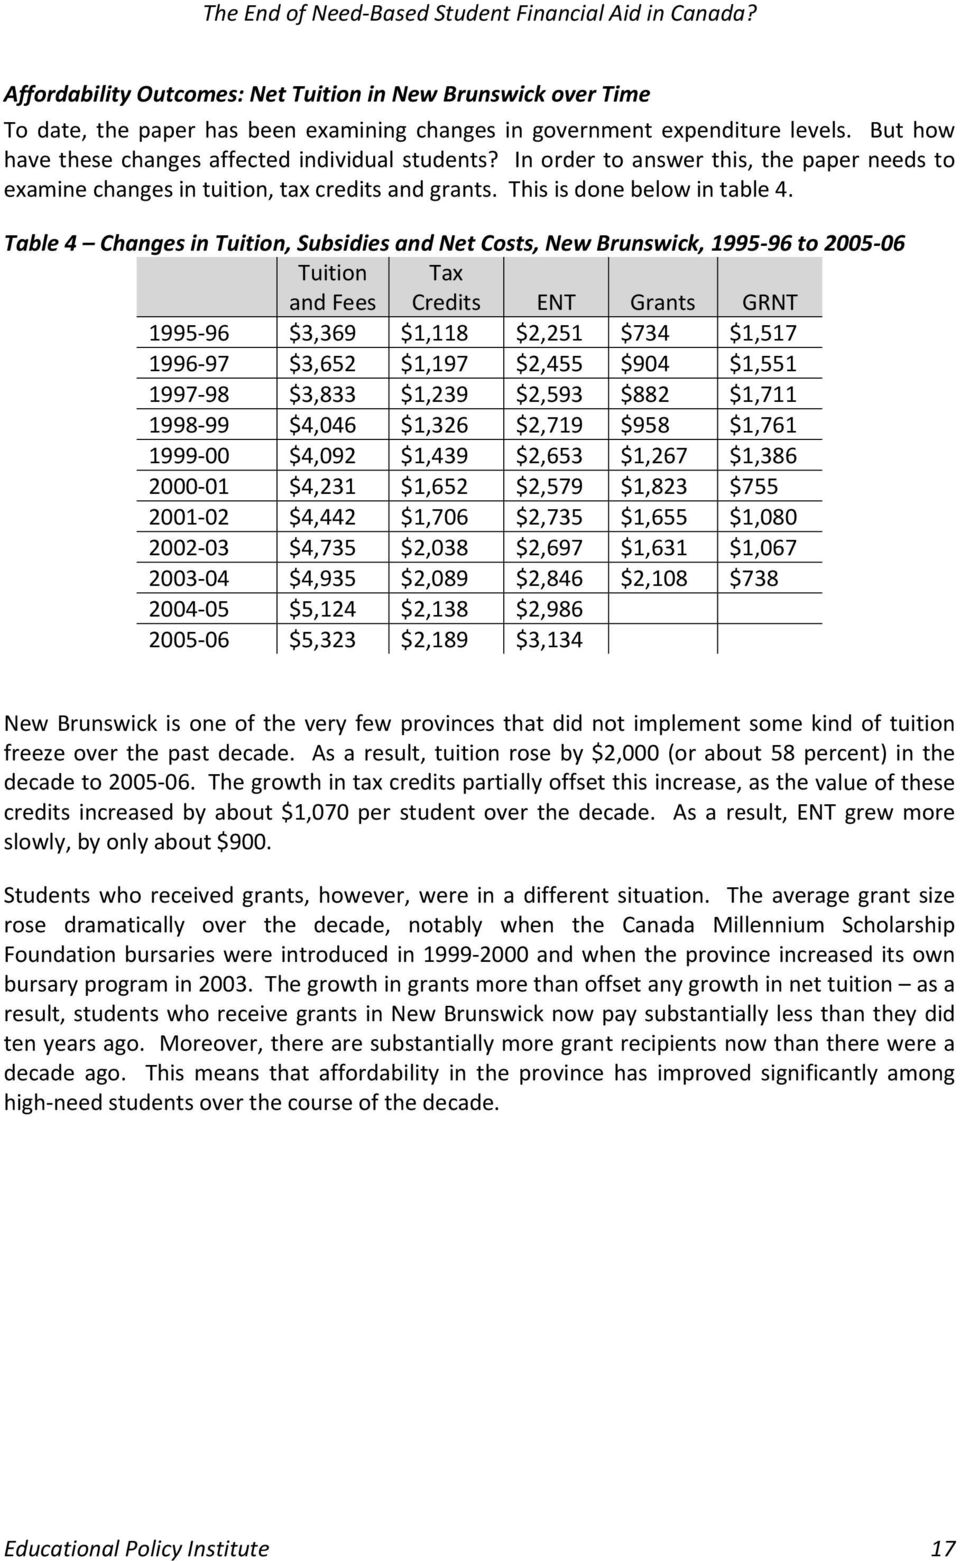 Table 4 Changes in Tuition, Subsidies and Net Costs, New Brunswick, 1995 96 to 2005 06 Tuition and Fees Tax Credits ENT Grants GRNT 1995 96 $3,369 $1,118 $2,251 $734 $1,517 1996 97 $3,652 $1,197